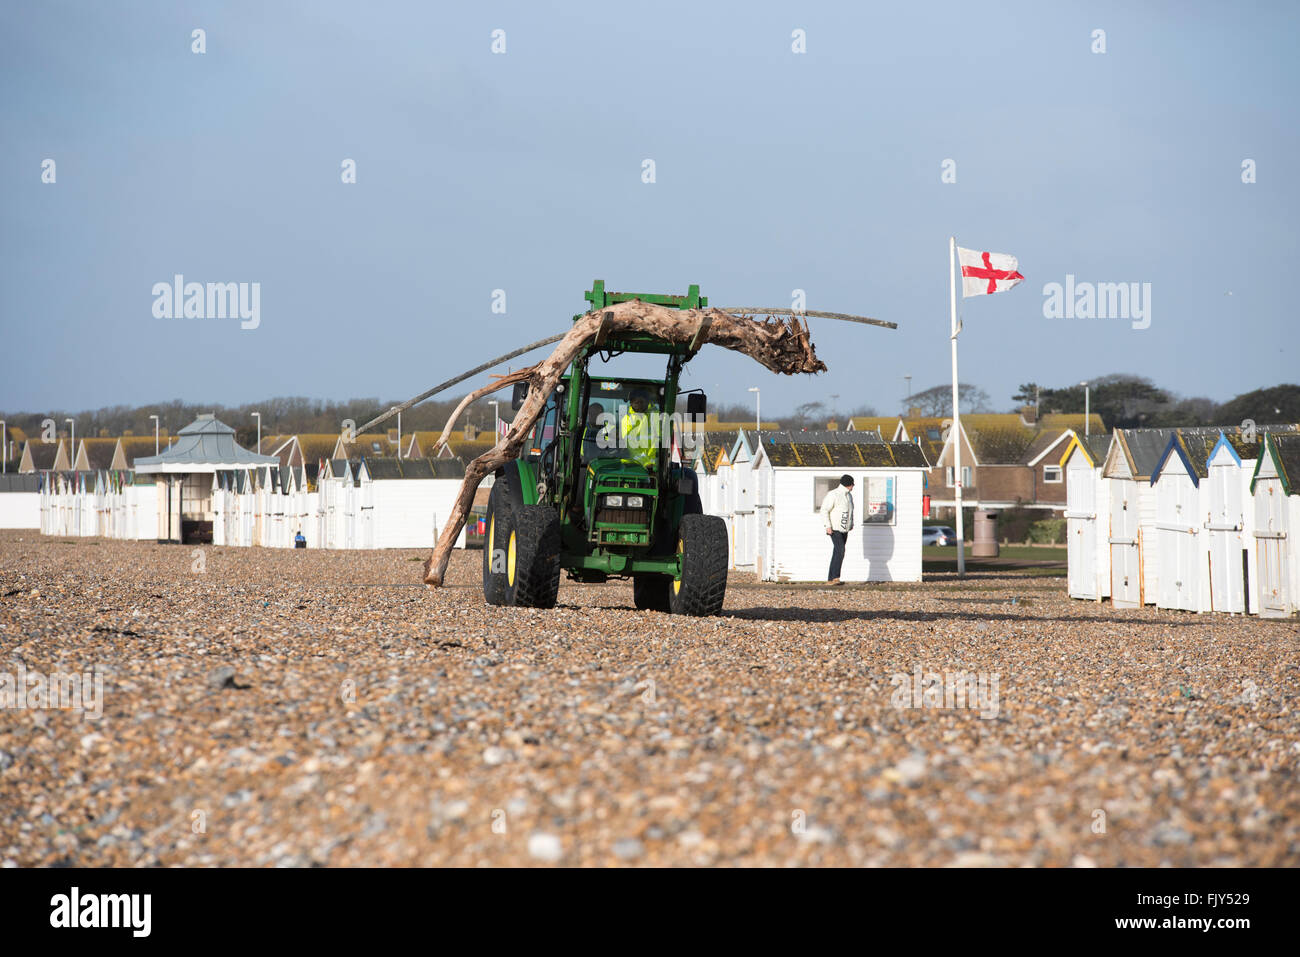 tractor removing old water washed  tree jetsam that has been washed up on a beach during a storm in Goring west - Stock Image